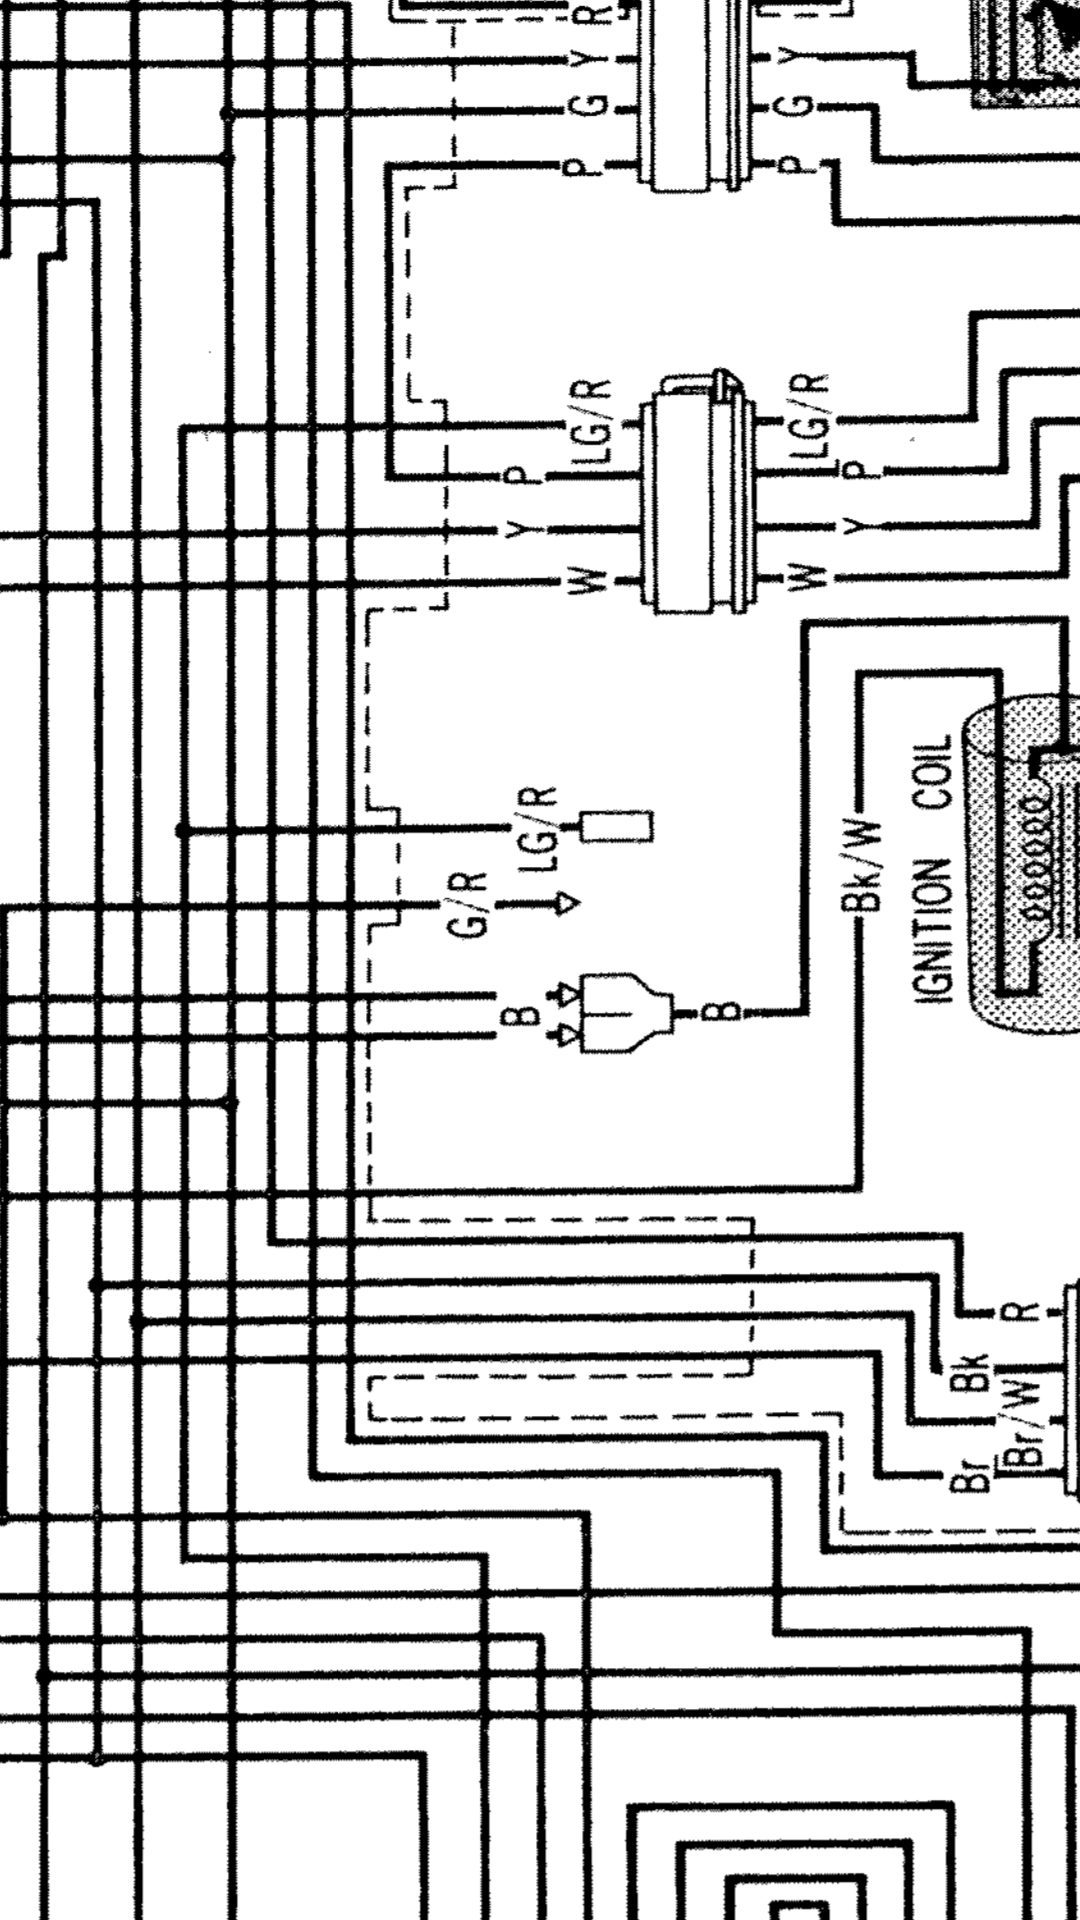 Diagram Wiring Questions